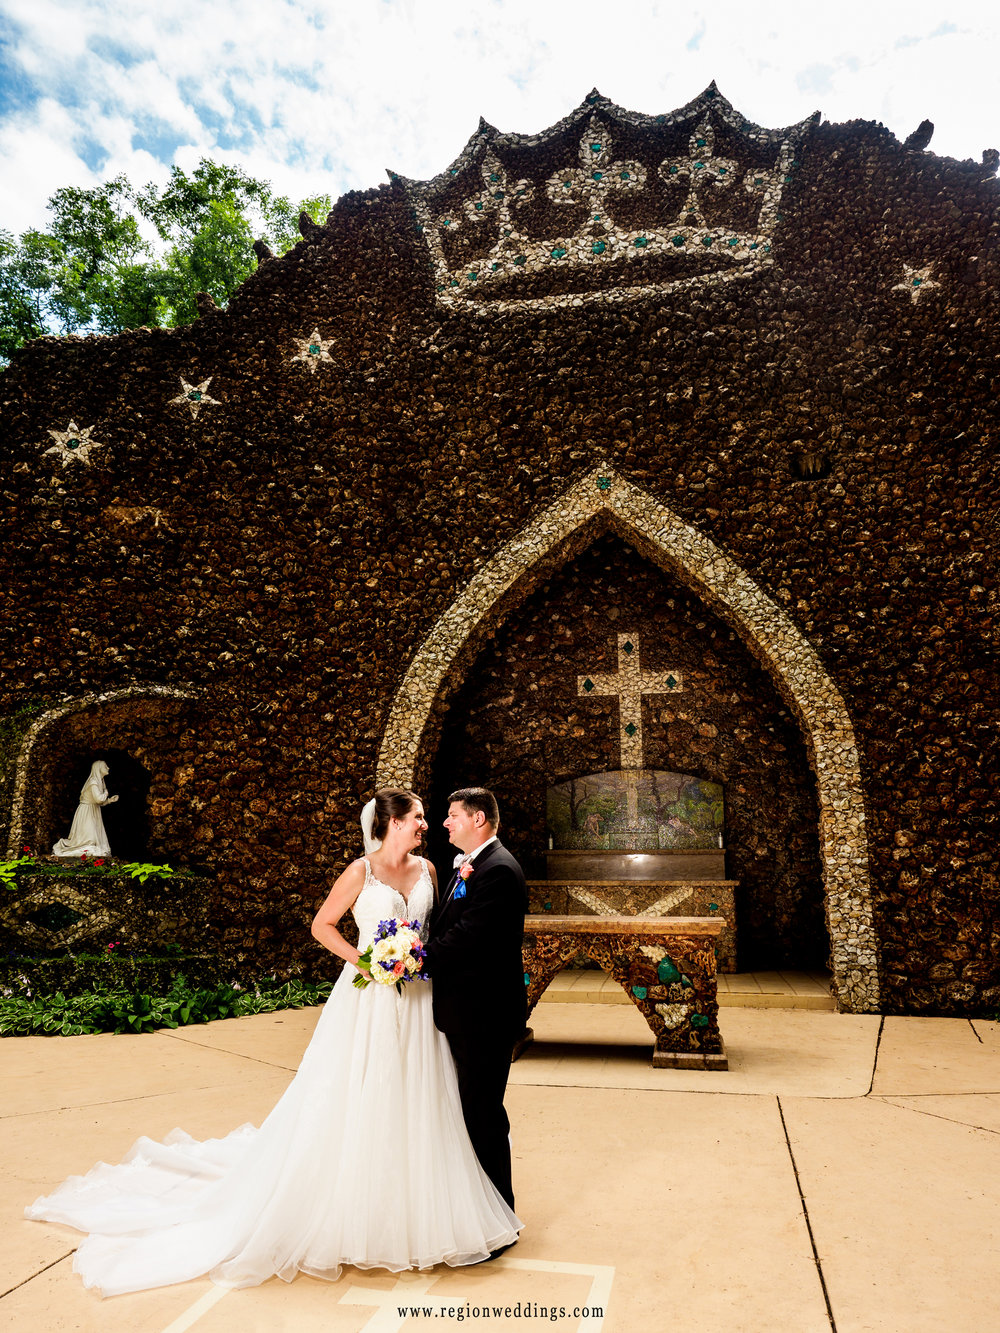 Bride and groom in front of the grotto at Carmelite Shrine.